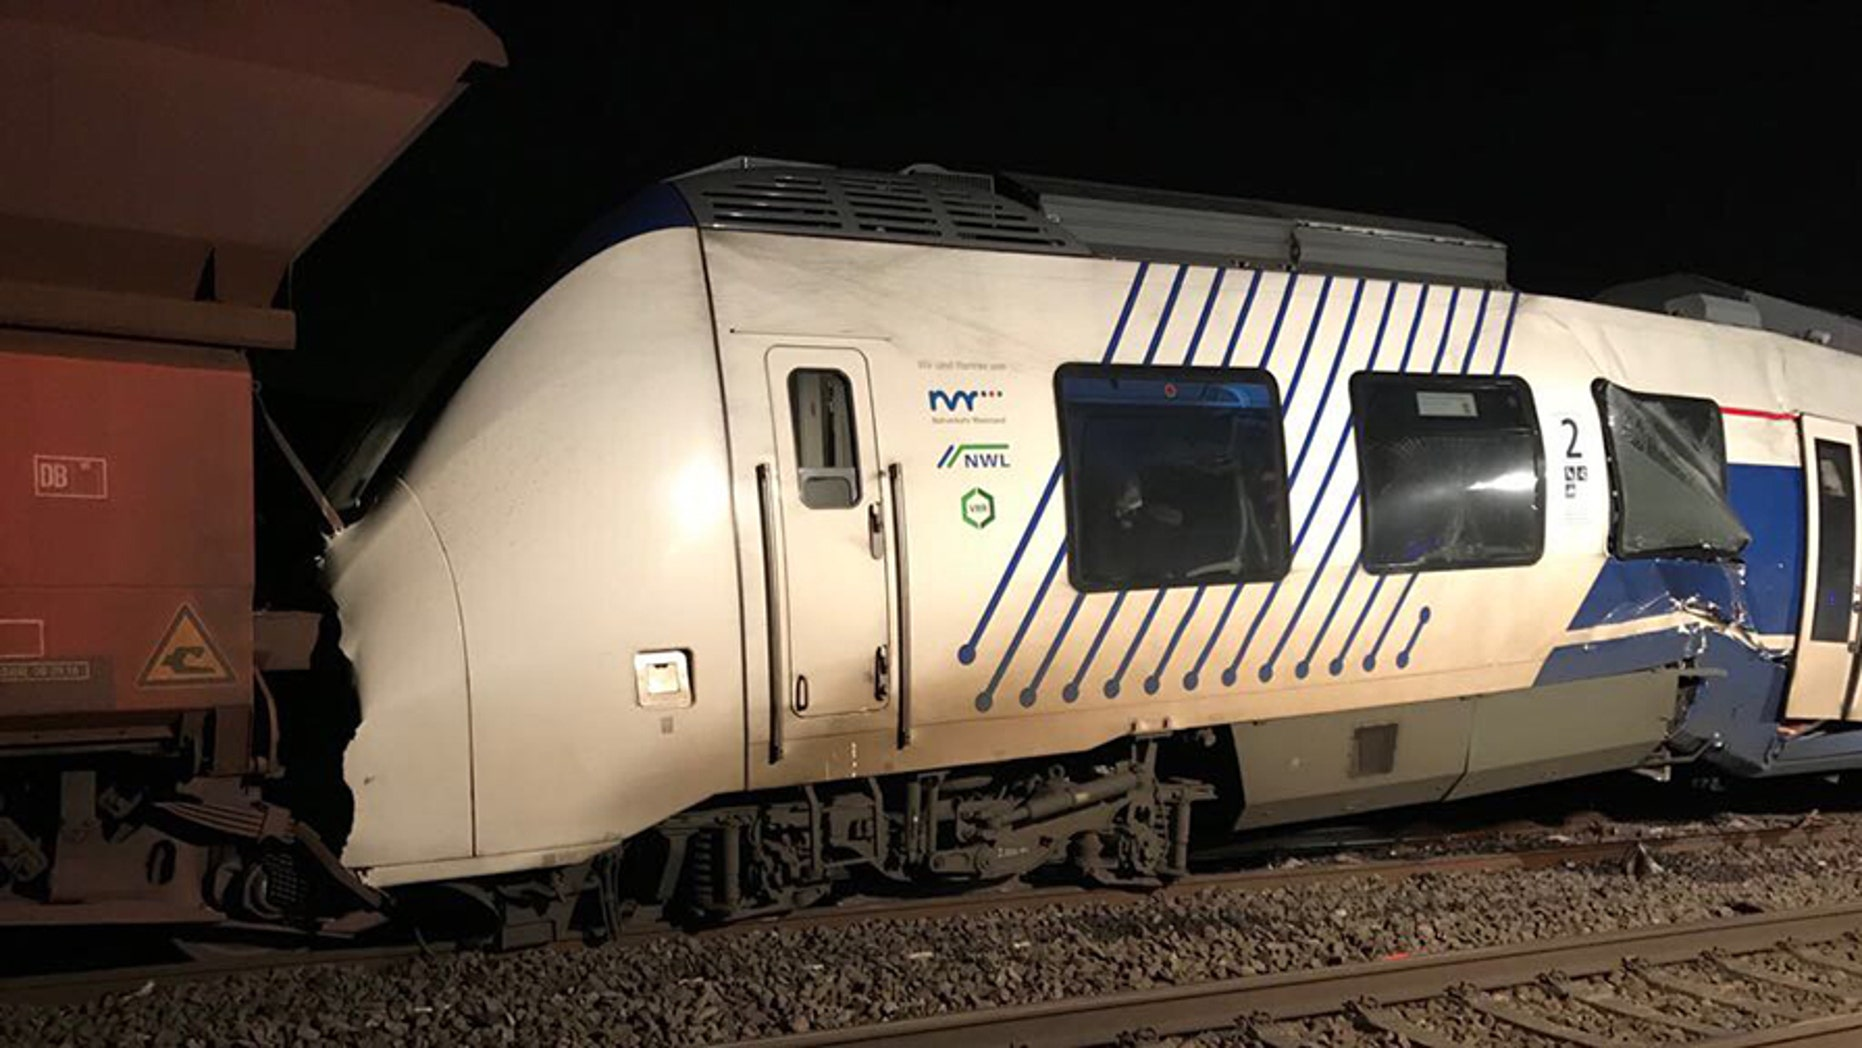 A passenger train hit a freight train in Germany Tuesday, leaving possibly 50 people injured, police said.